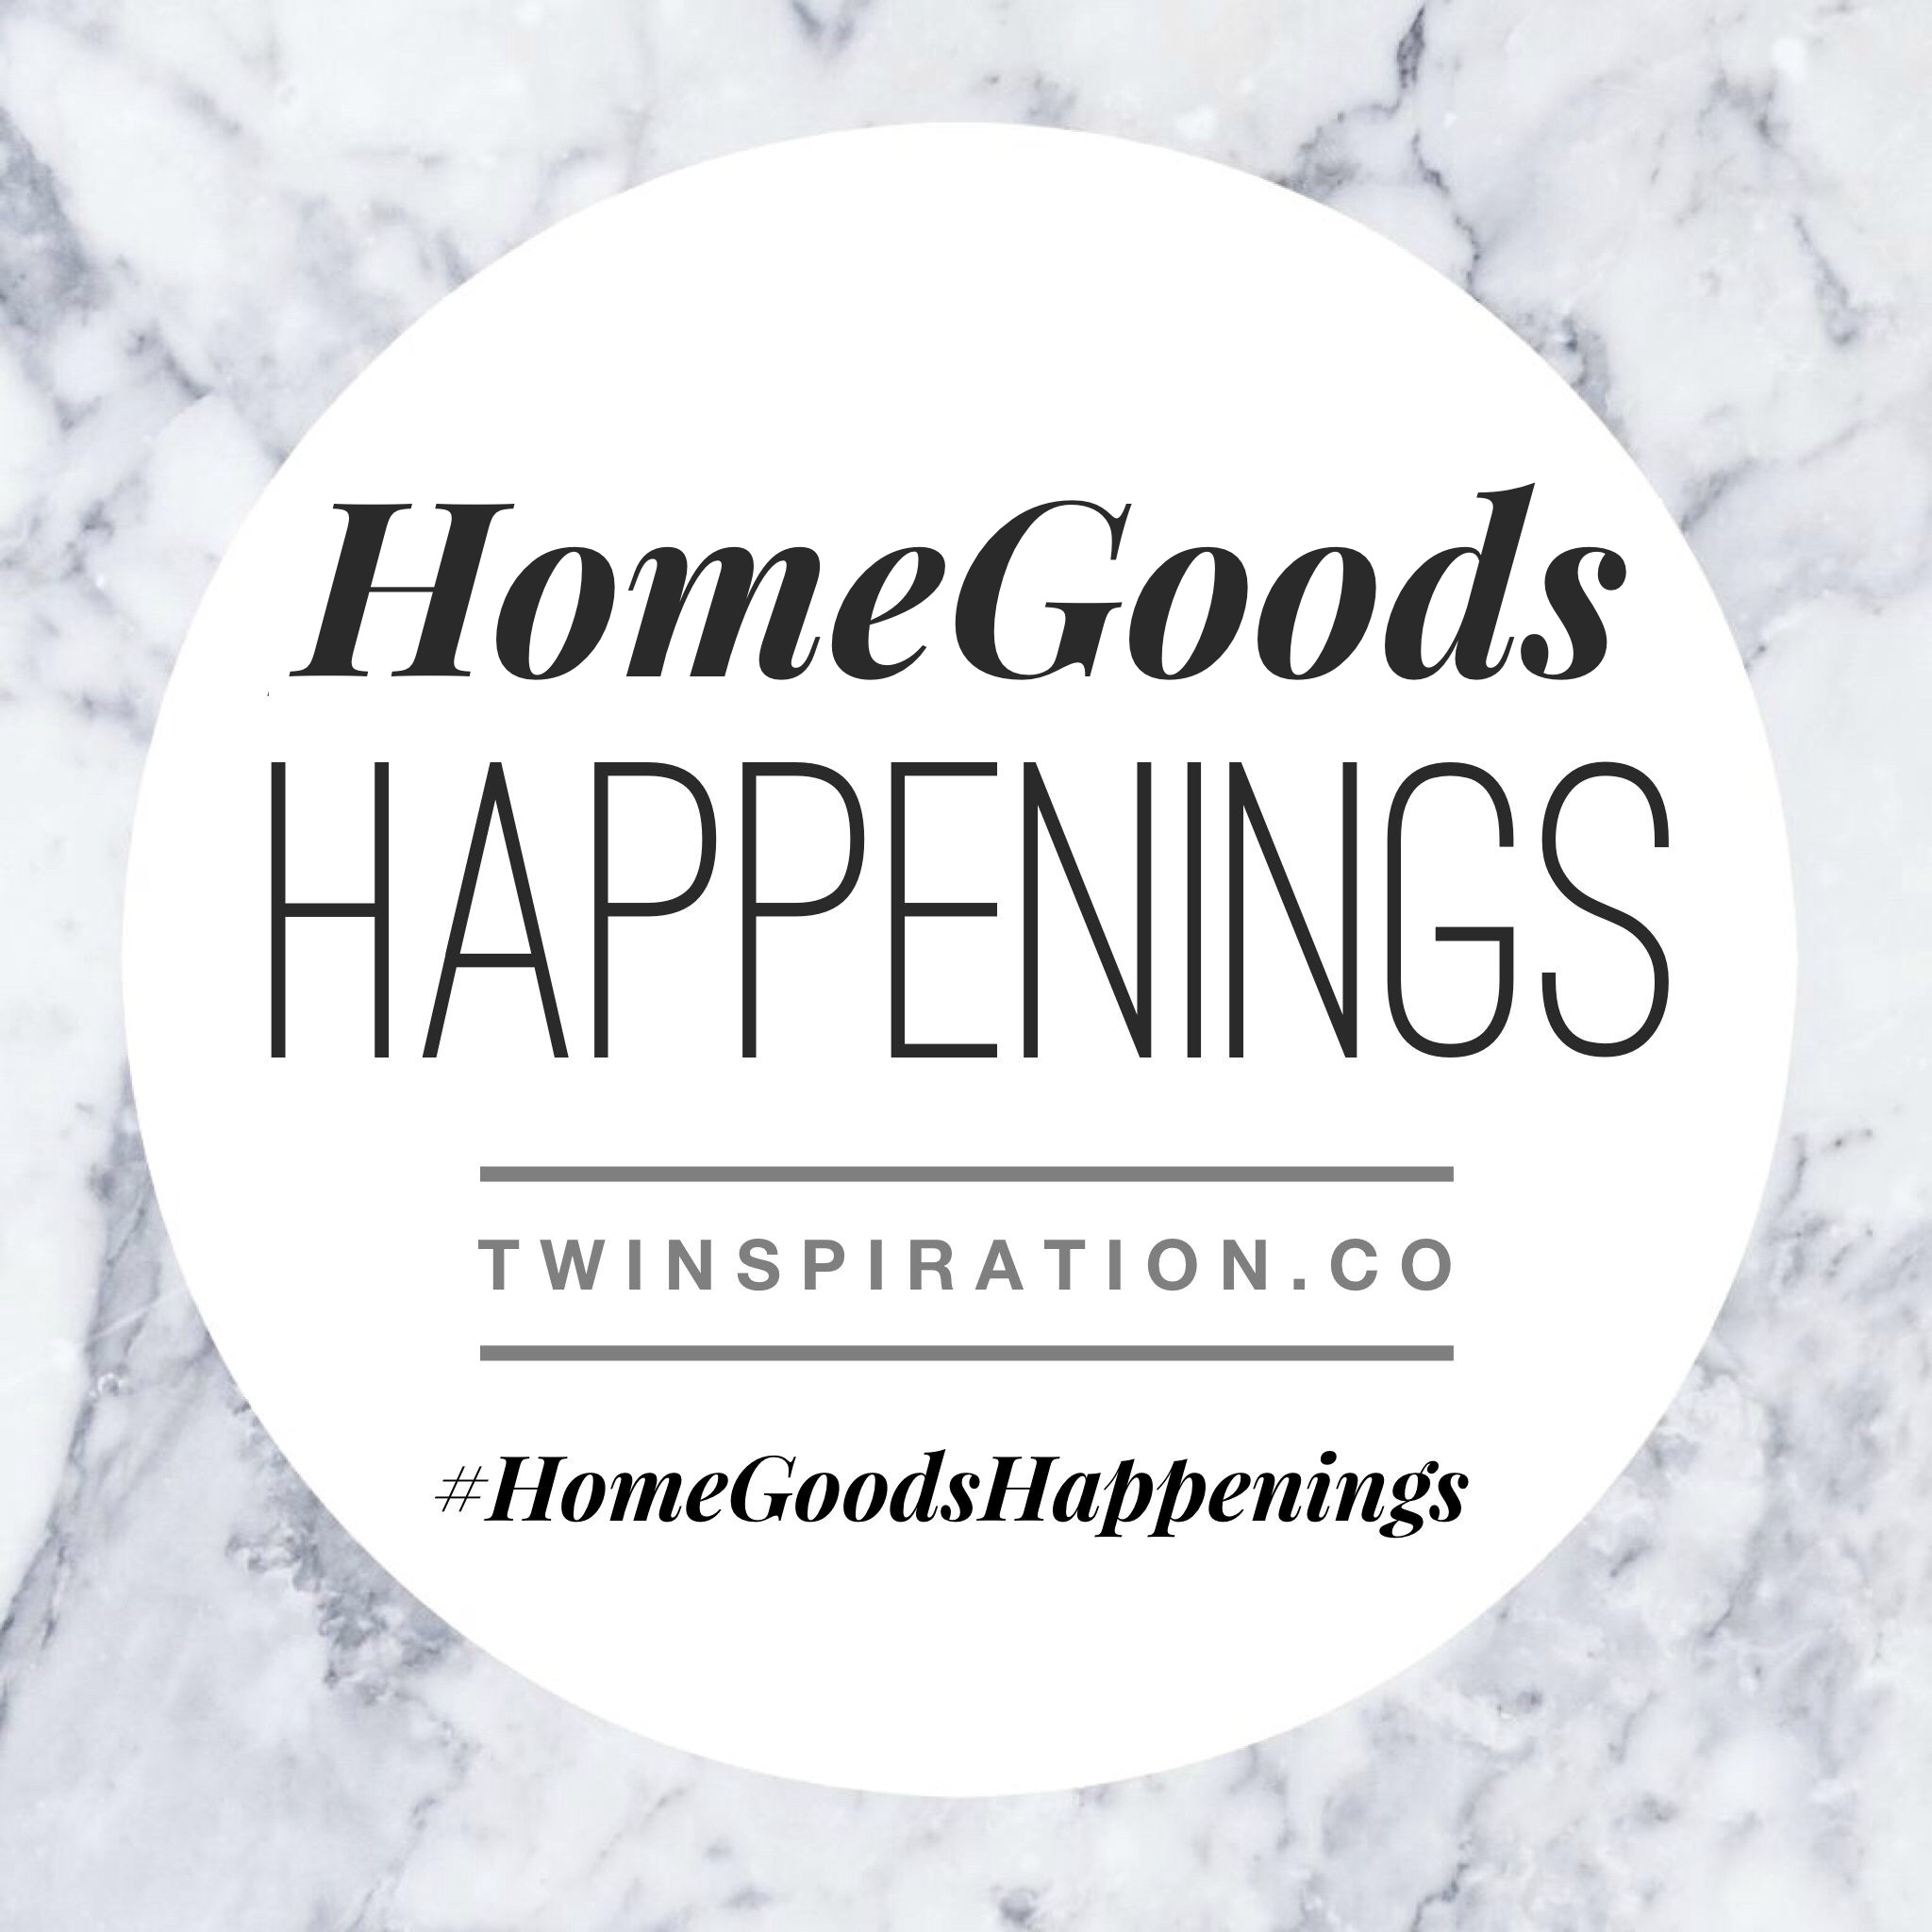 HomeGoods Happenings by Twinspiration